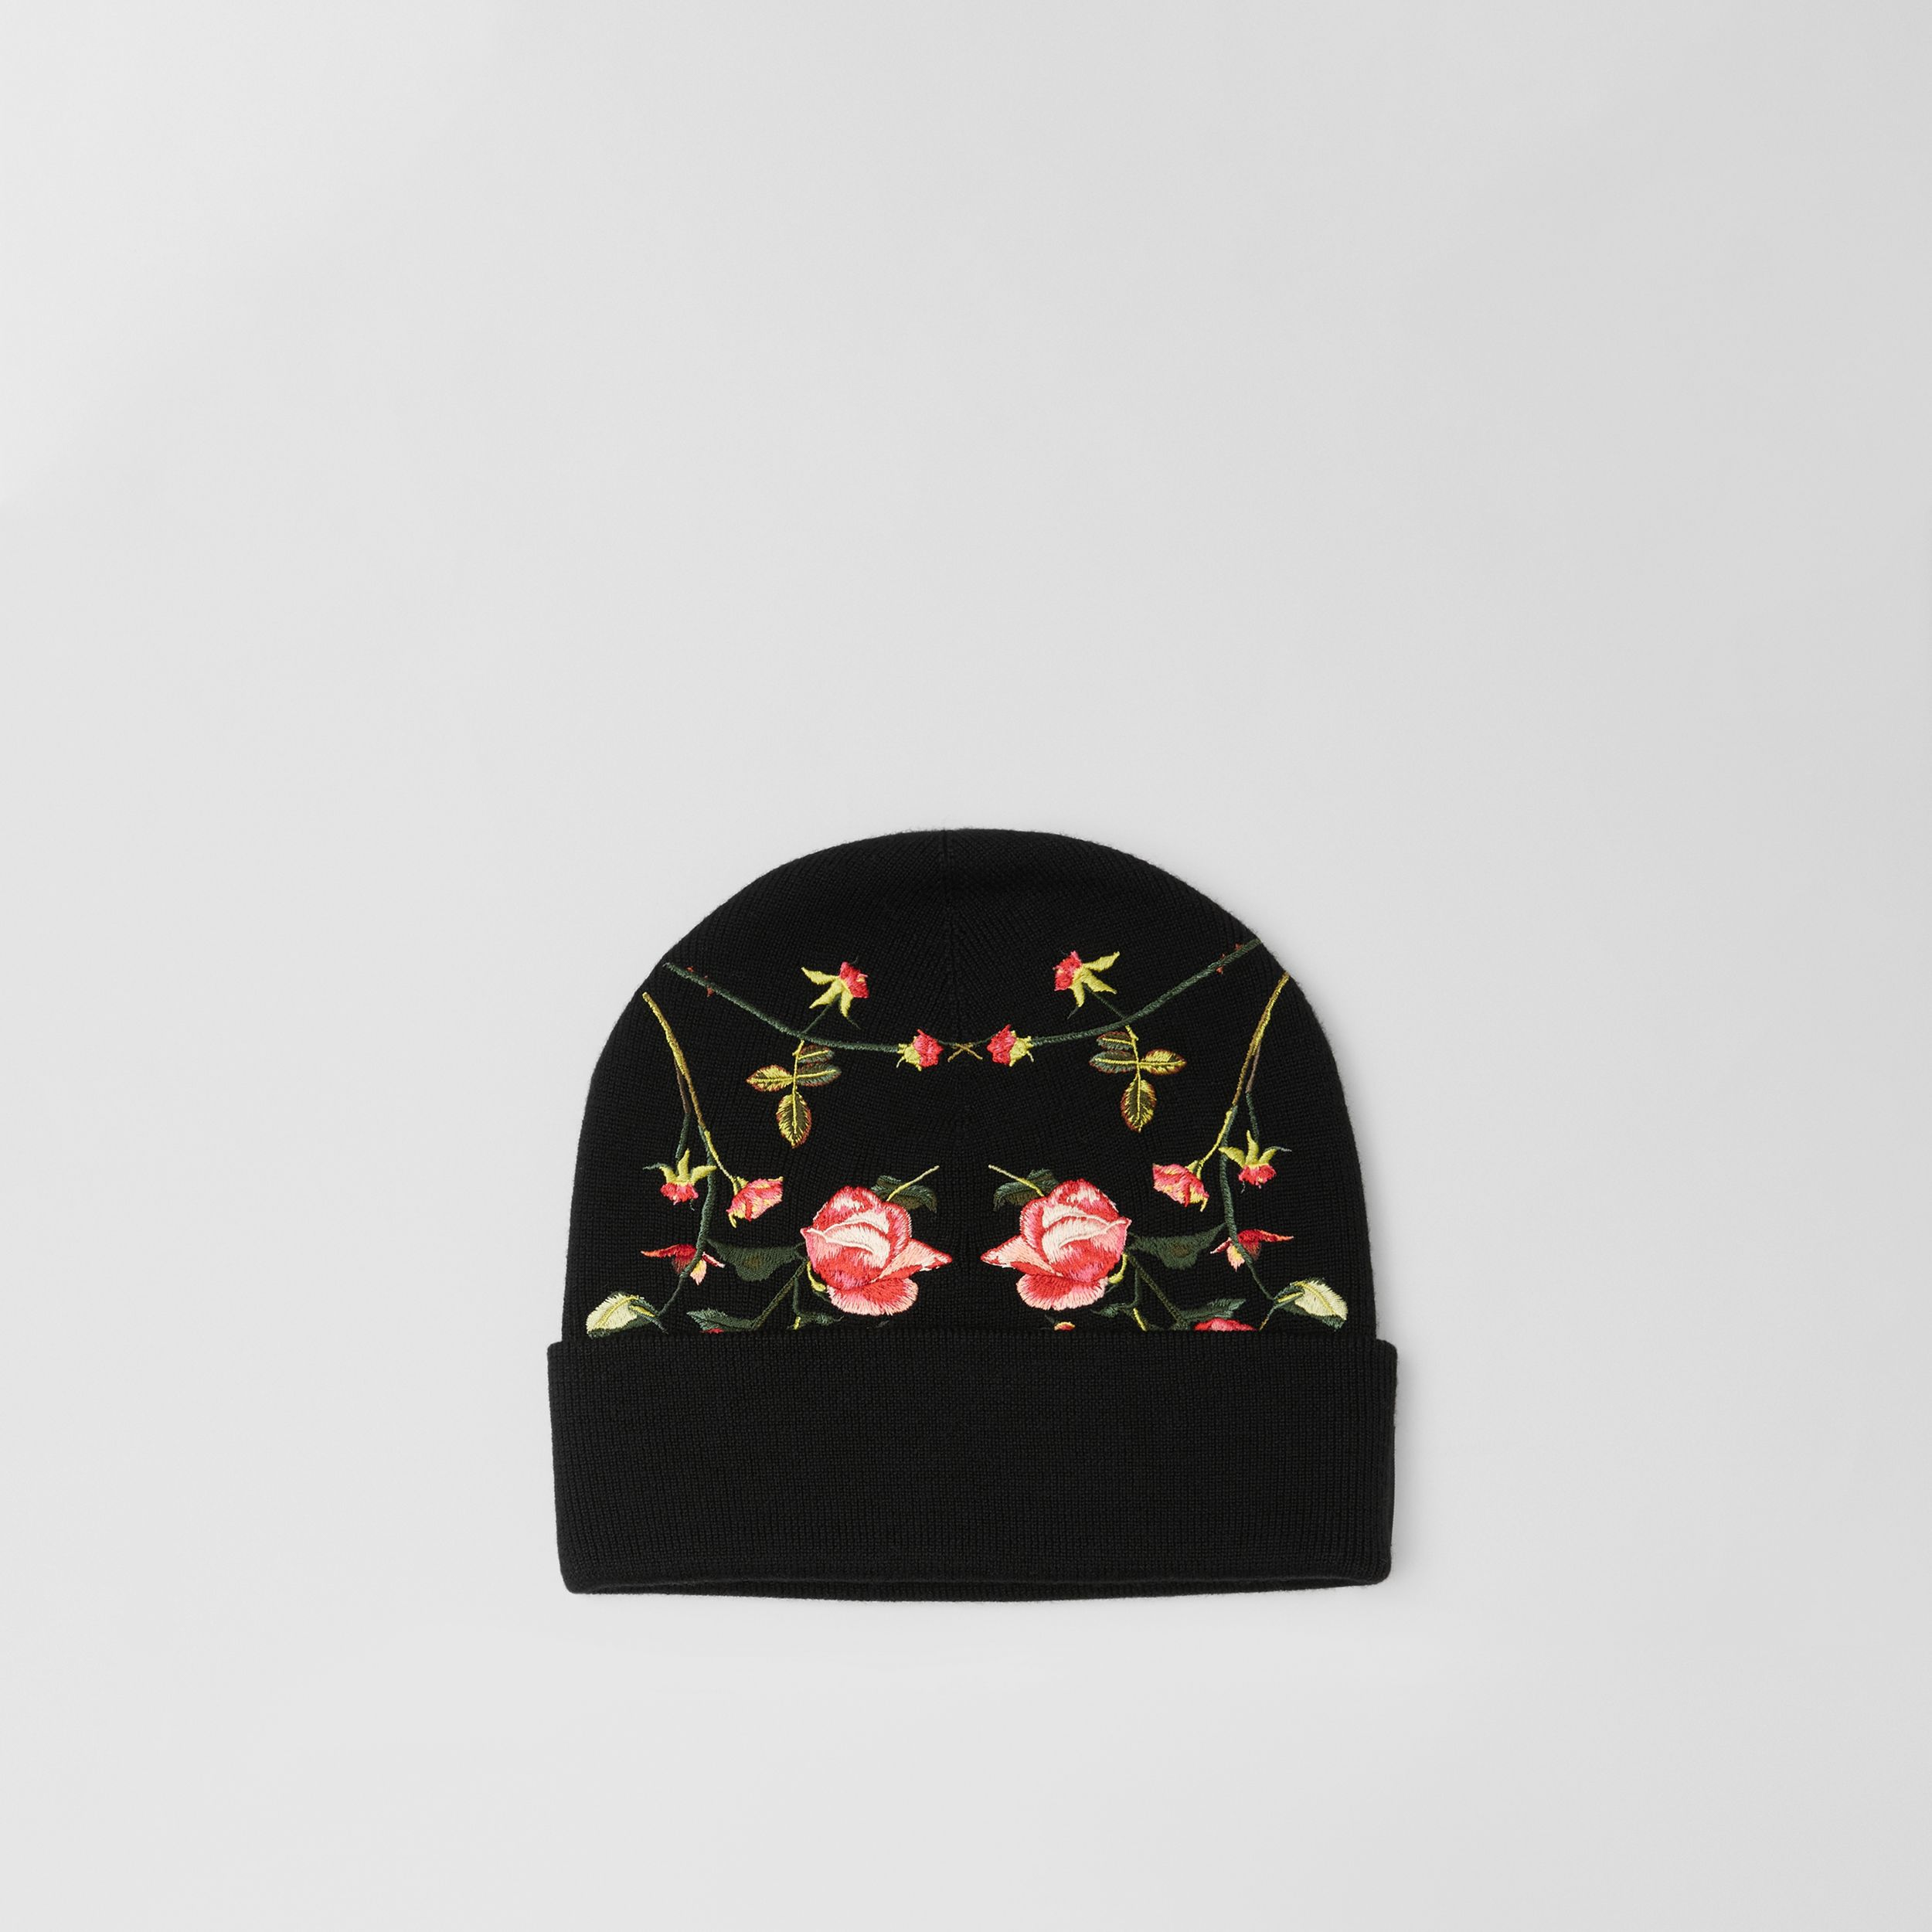 Embroidered Rose Merino Wool Beanie in Black | Burberry - 1